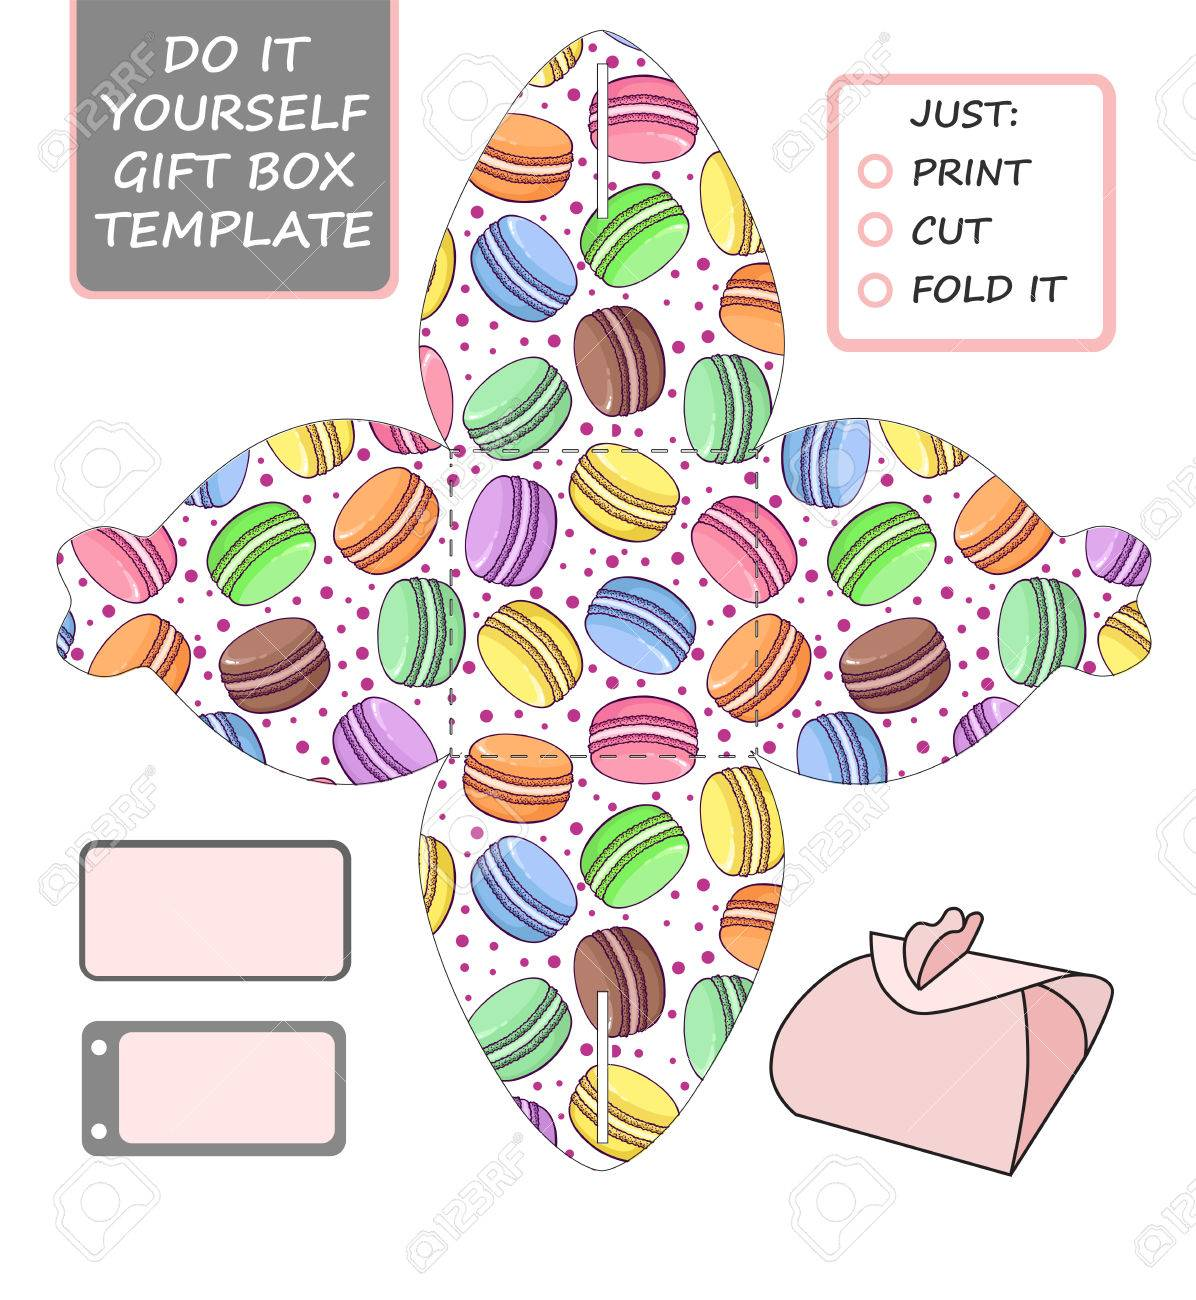 favor gift box die cut box template with macaron pattern